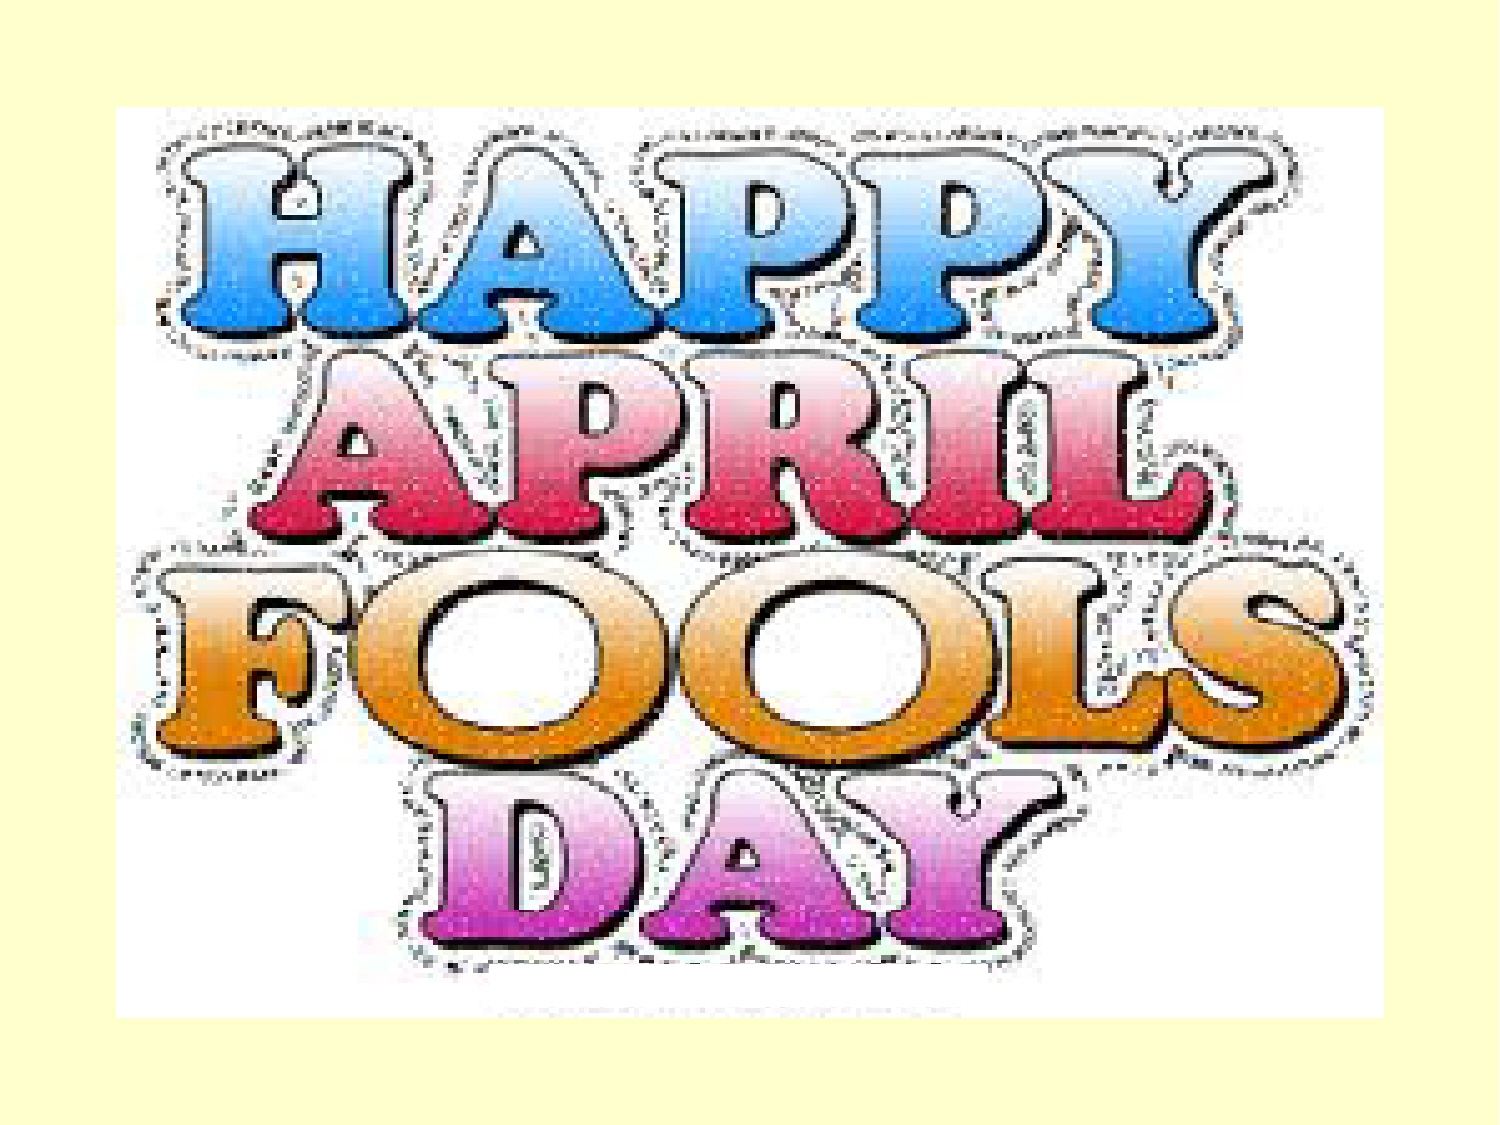 April Fools Day Download Funny Images Jokes Pranks FUKRY 1500x1125